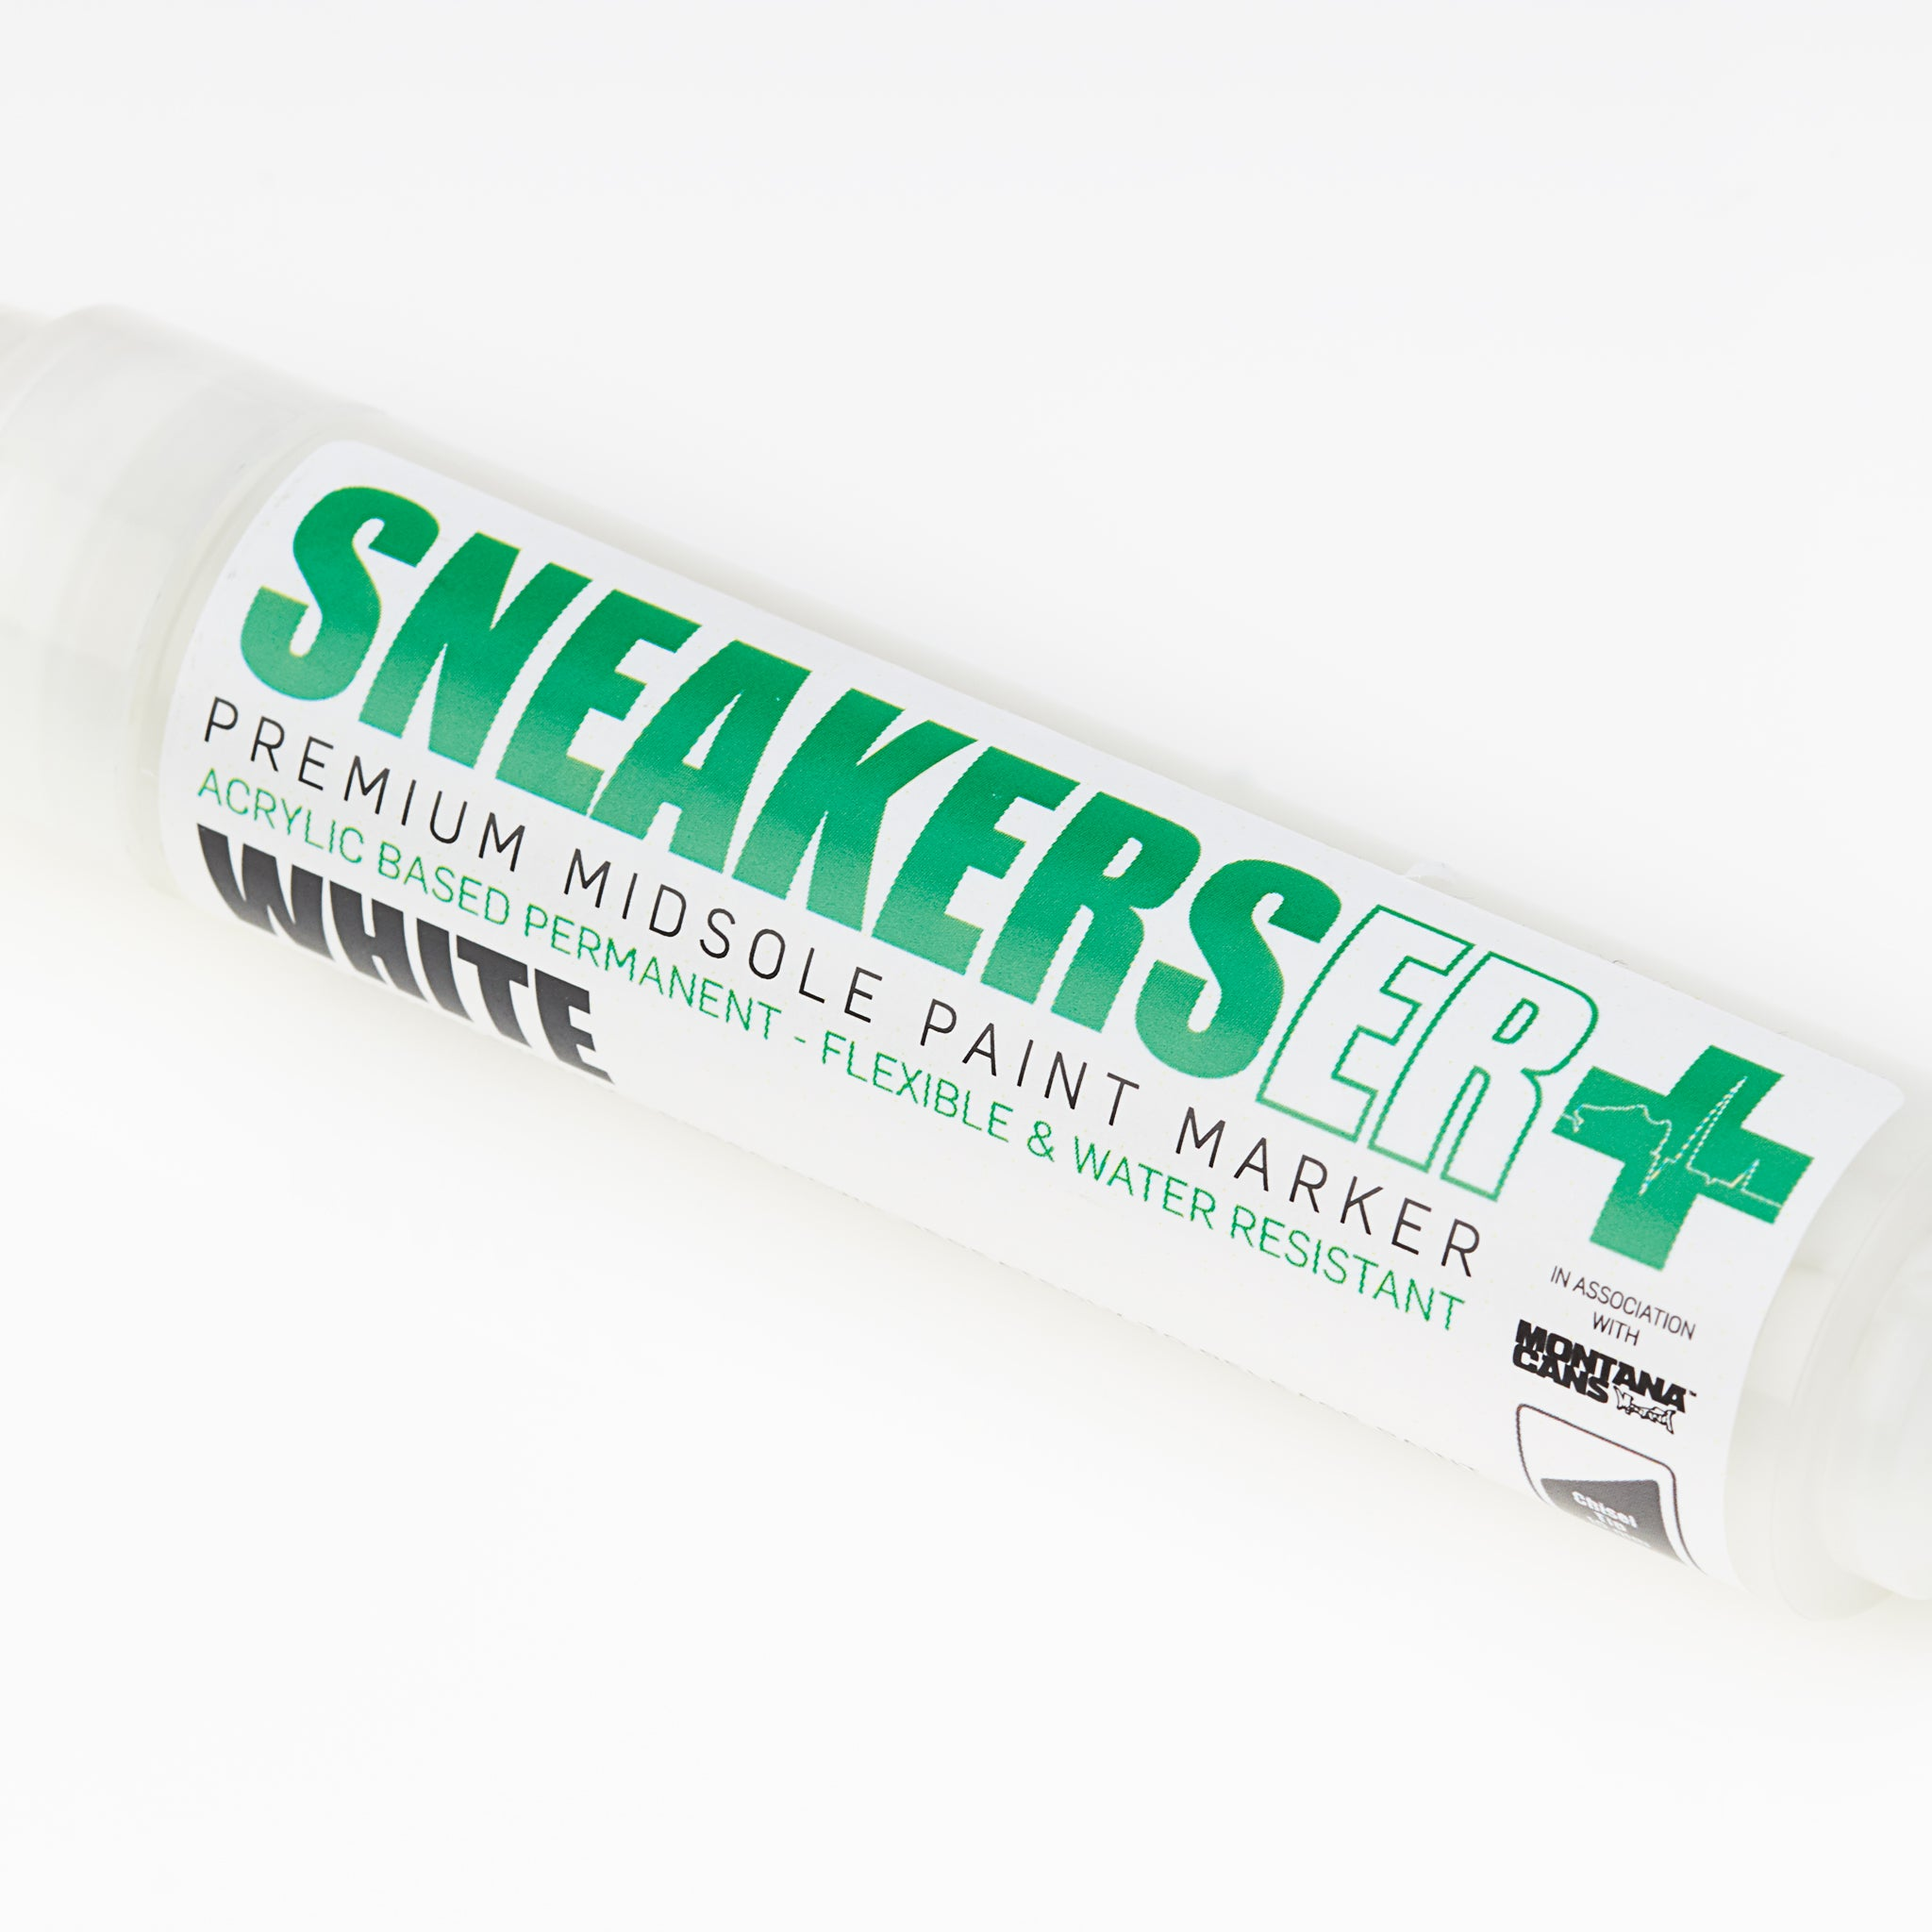 SNEAKERS ER Midsole Paint Pen